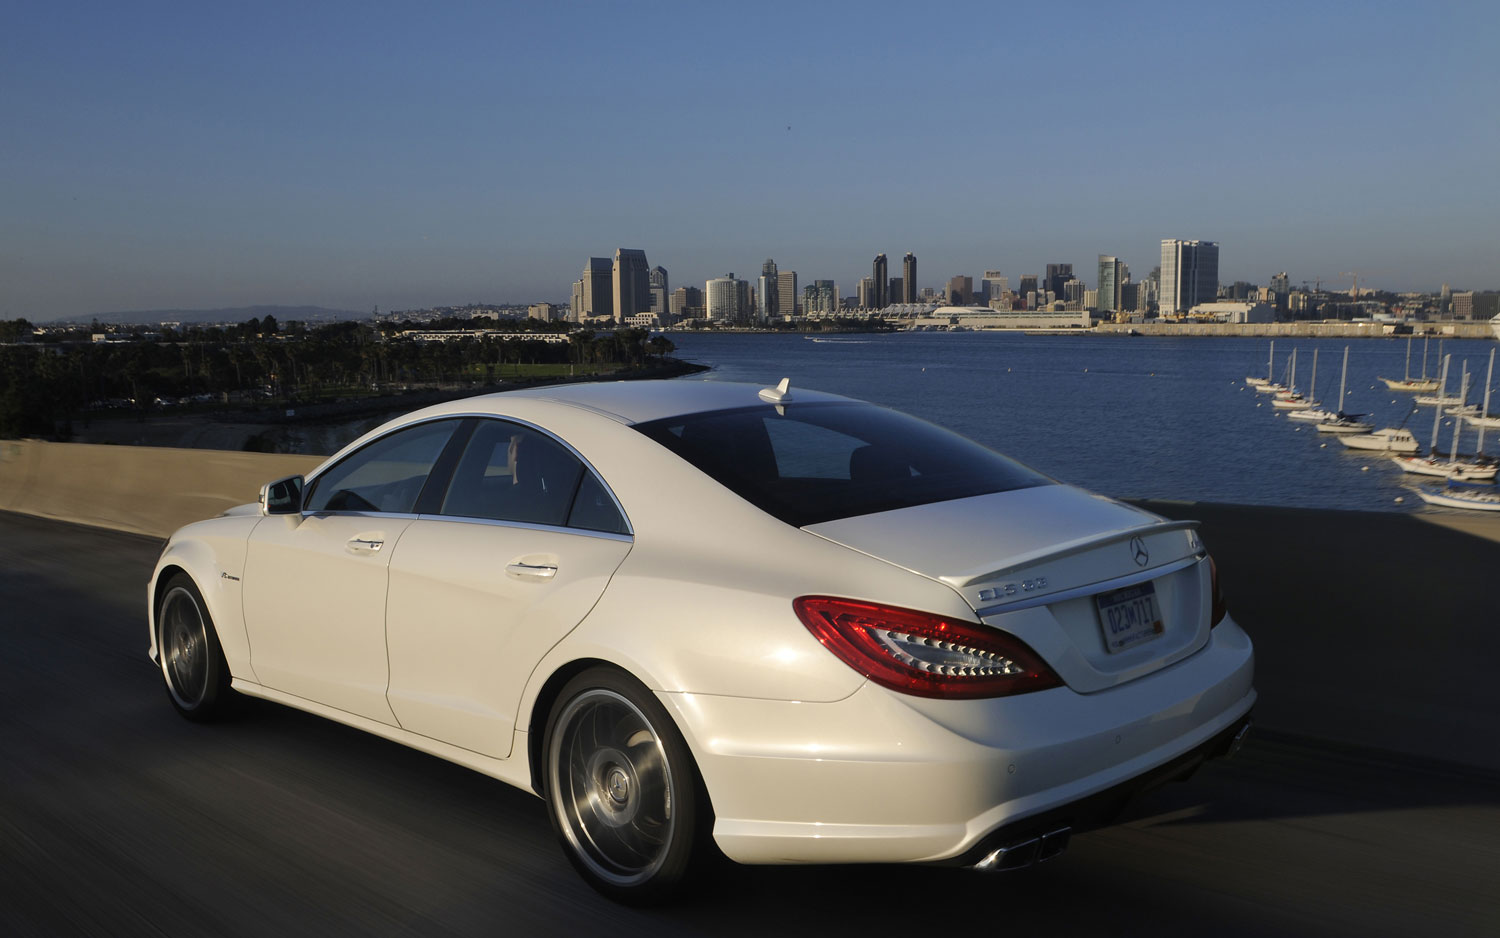 Mercedes benz cls 63 amg technical details history for Mercedes benz amg parts